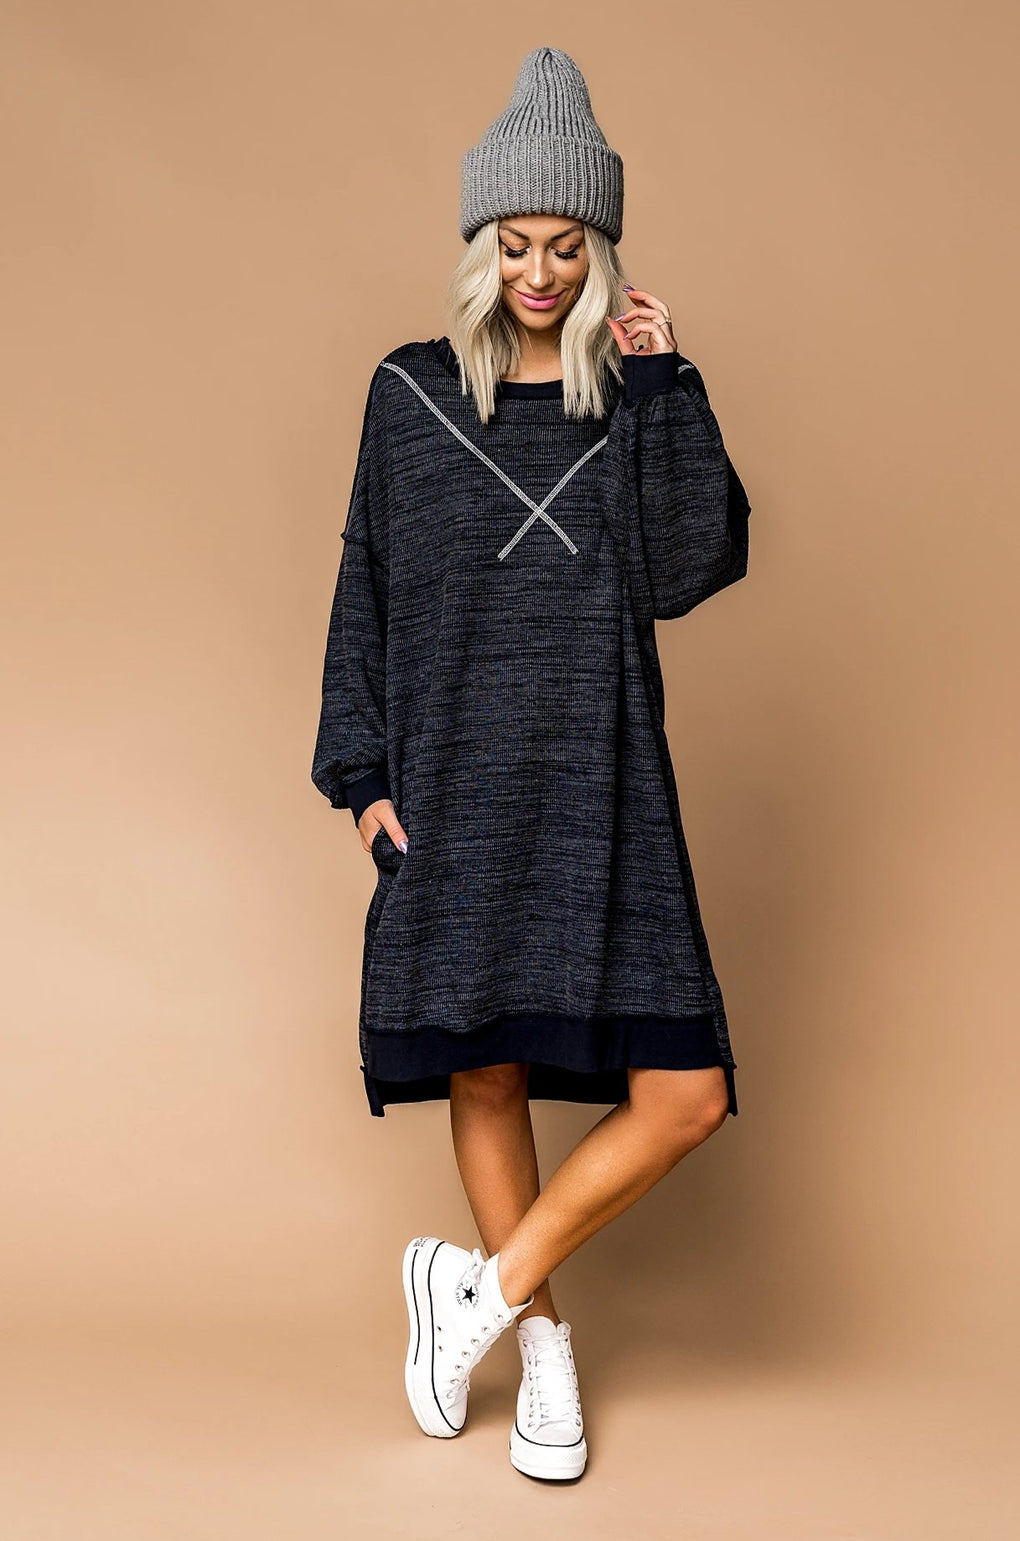 Blue Mood Oversized Sweater Dress